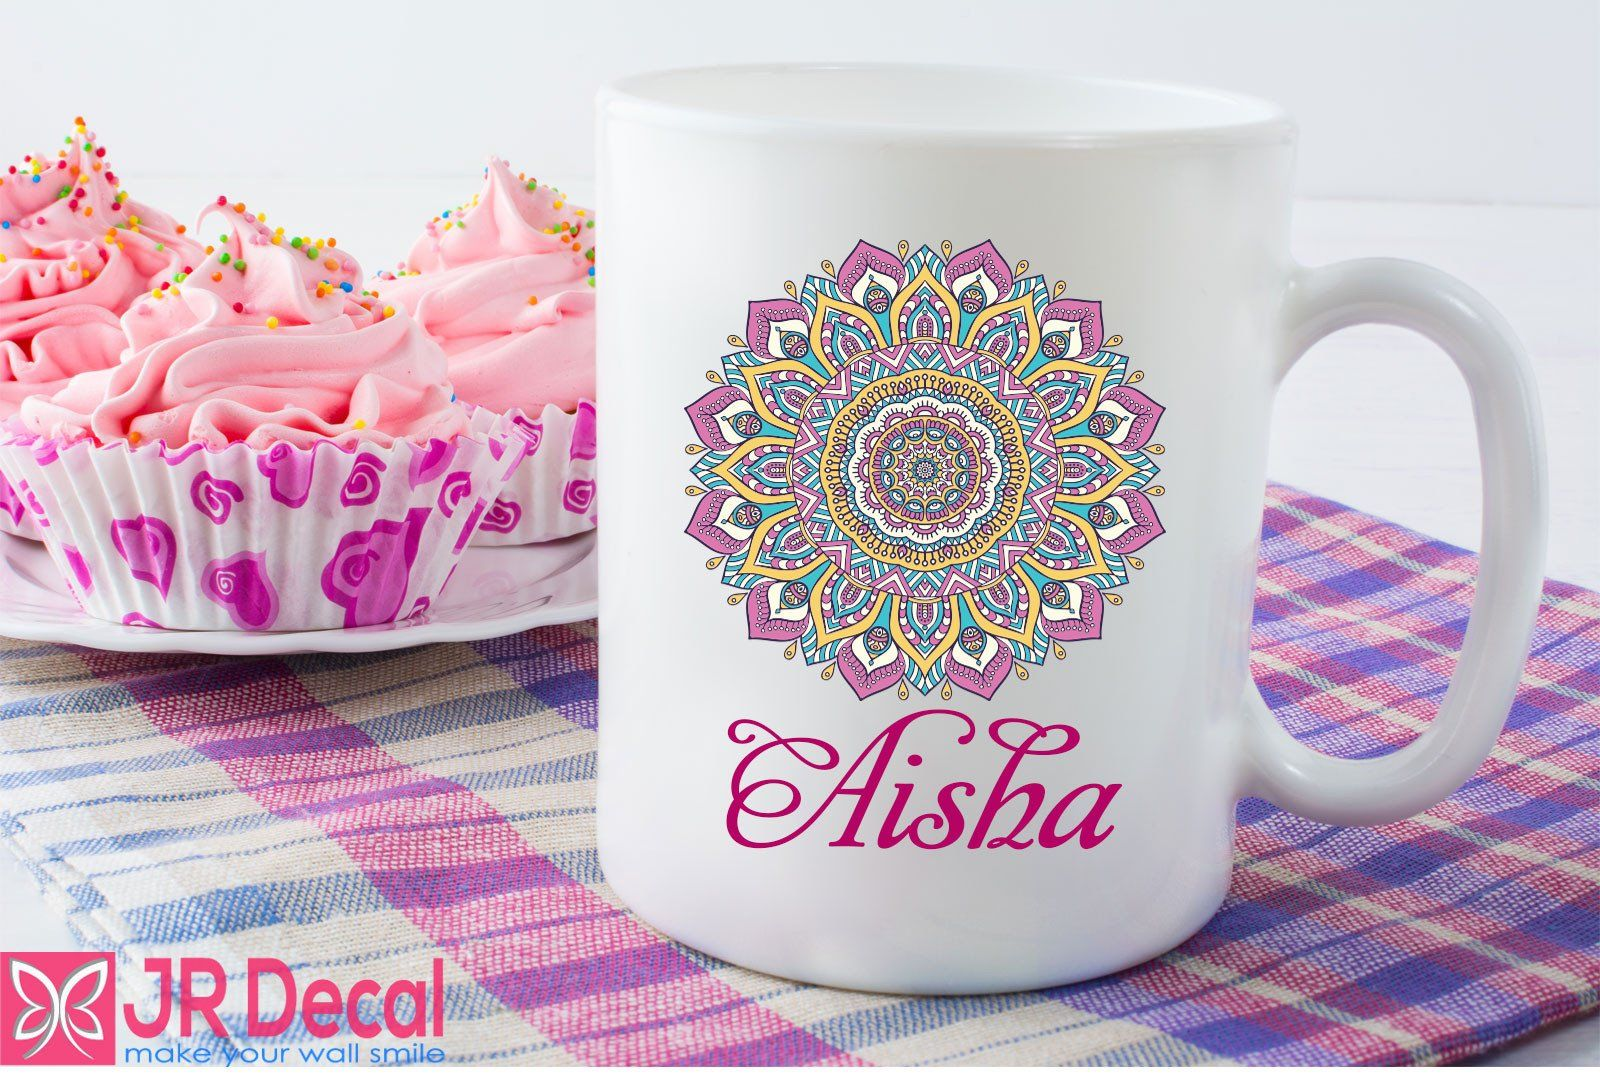 A picture of a cute coffee cup in pink color which seems to